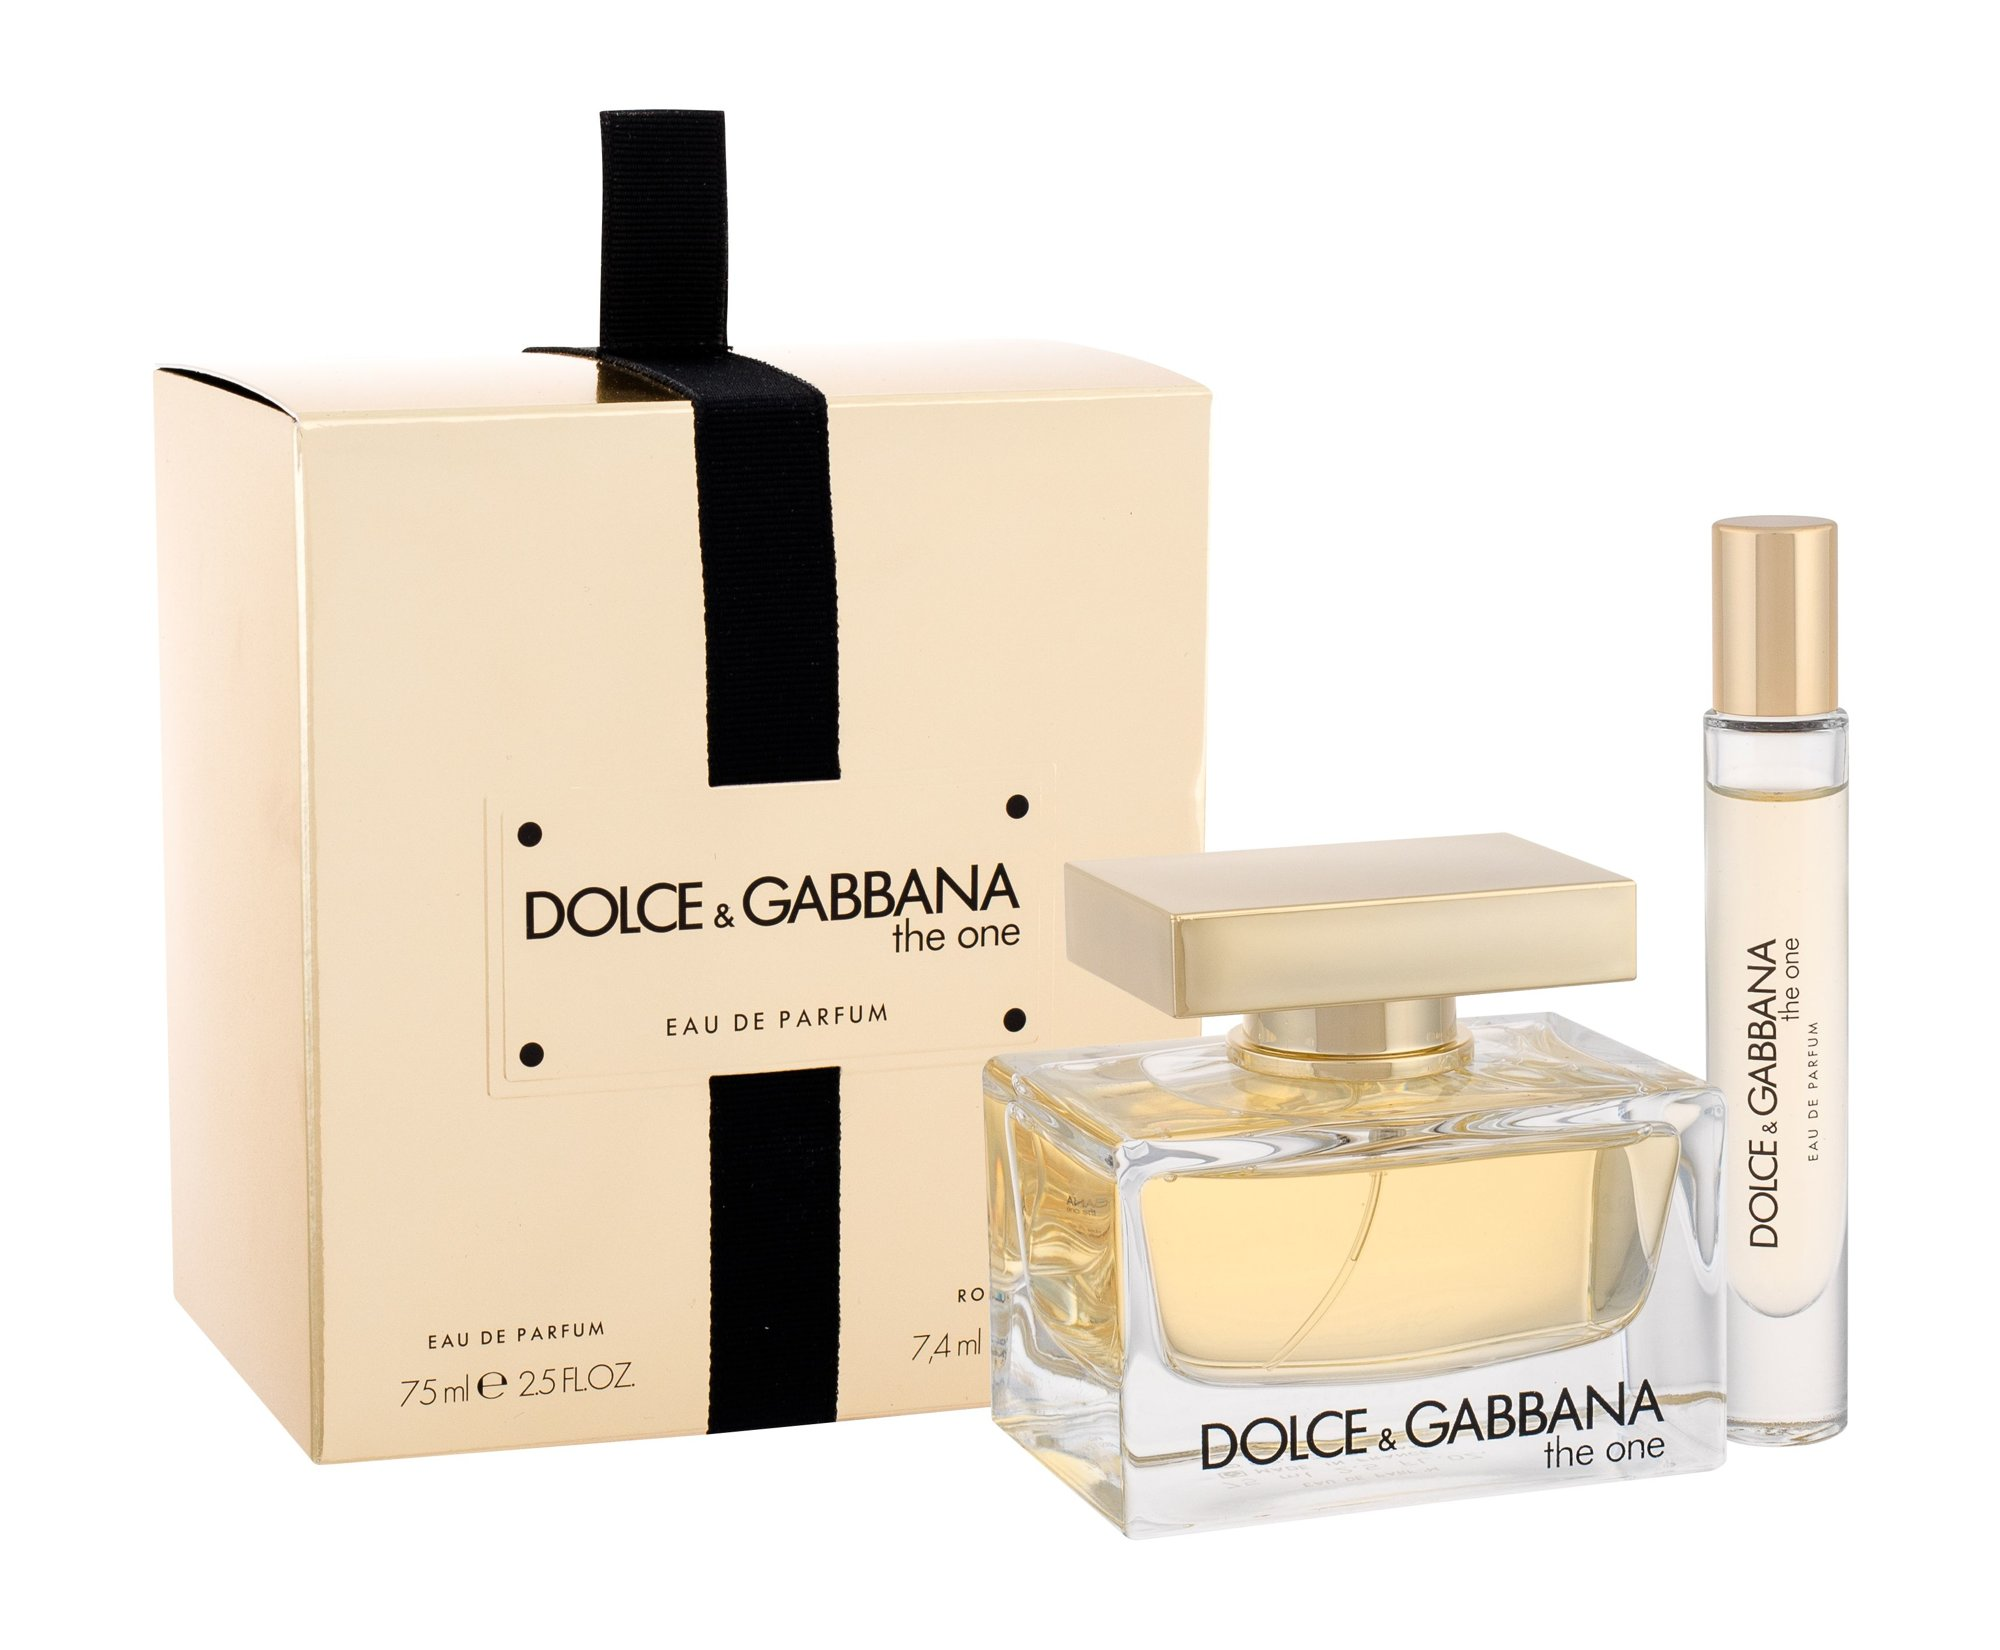 Dolce&Gabbana The One Eau de Parfum 75ml